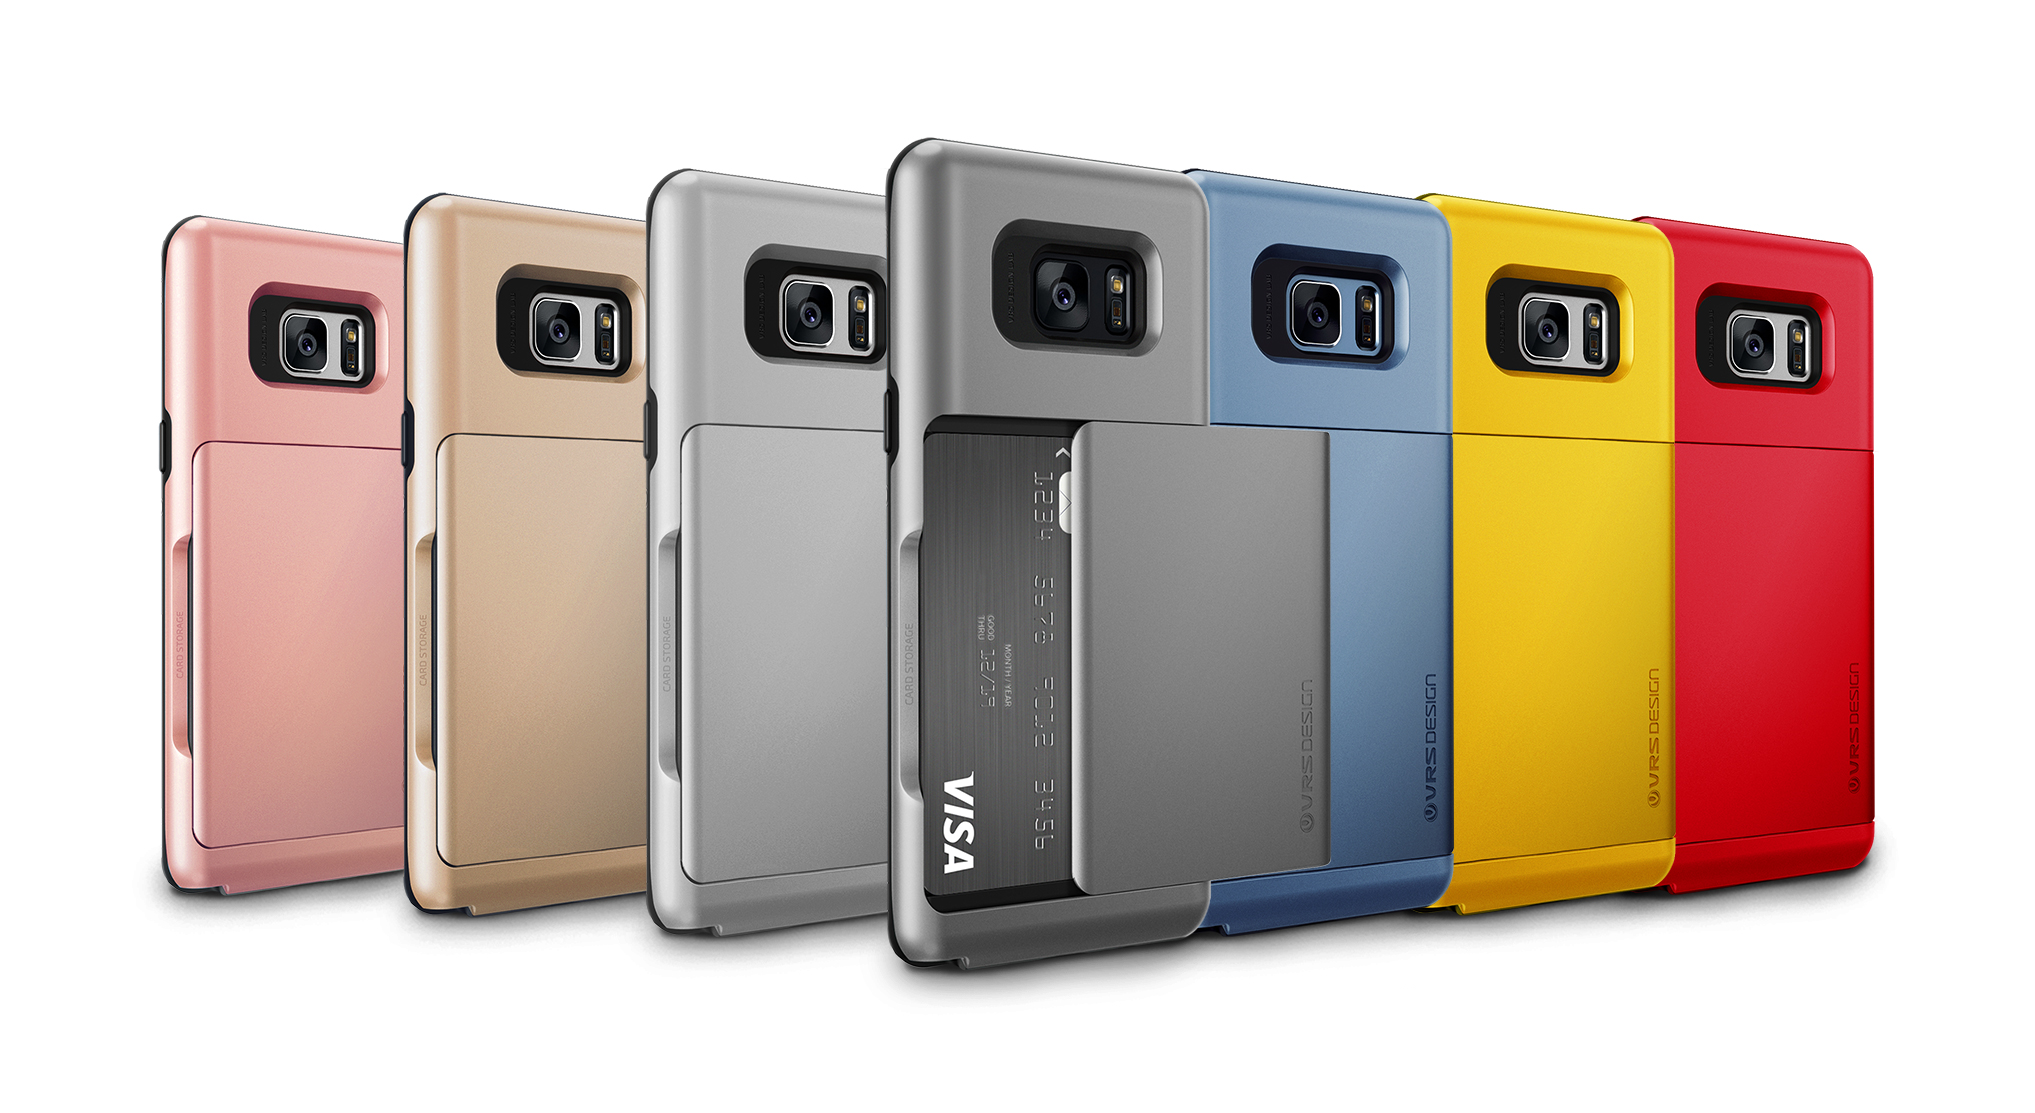 VRS Design unveils semi-automatic Damda Glide cases for the Samsung Galaxy Note 7